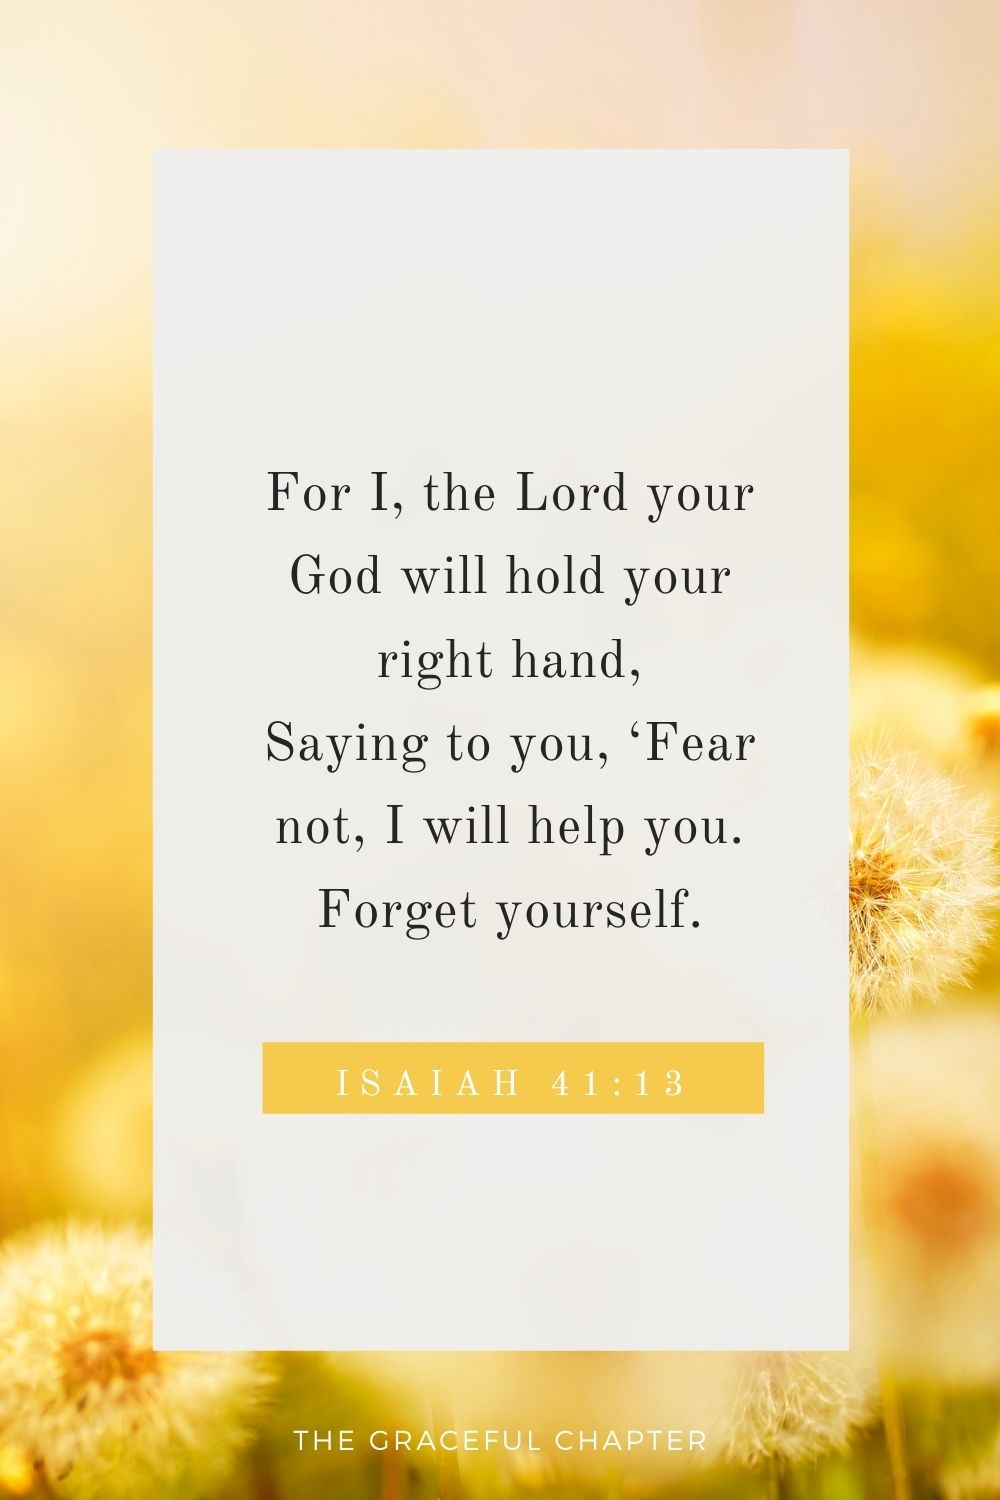 For I, the Lord your God will hold your right hand, Saying to you, 'Fear not, I will help you. Isaiah 41:13